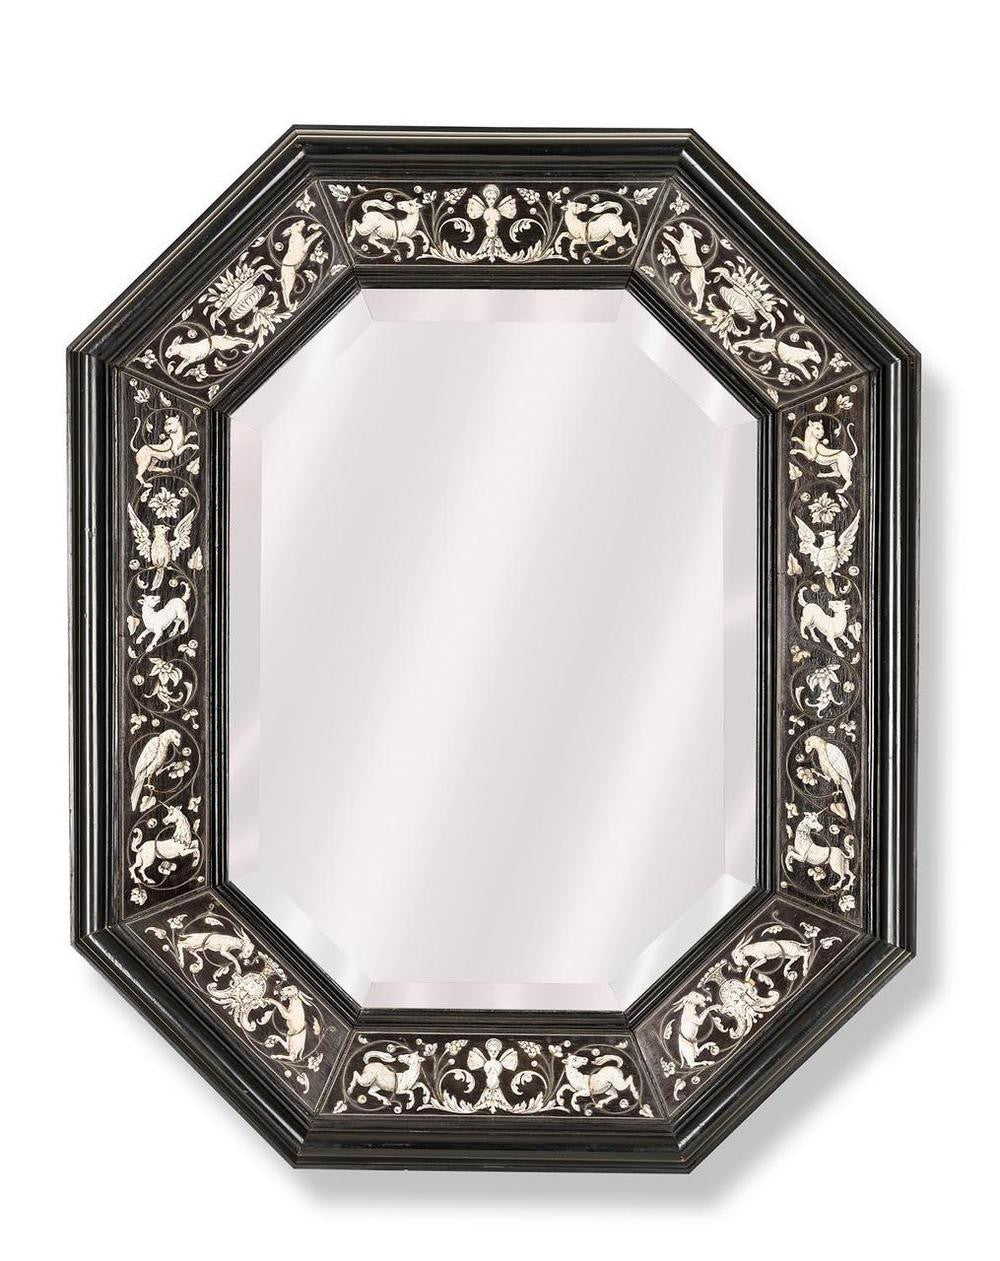 An Early 19th Century Flemish Octagonal Mirror.